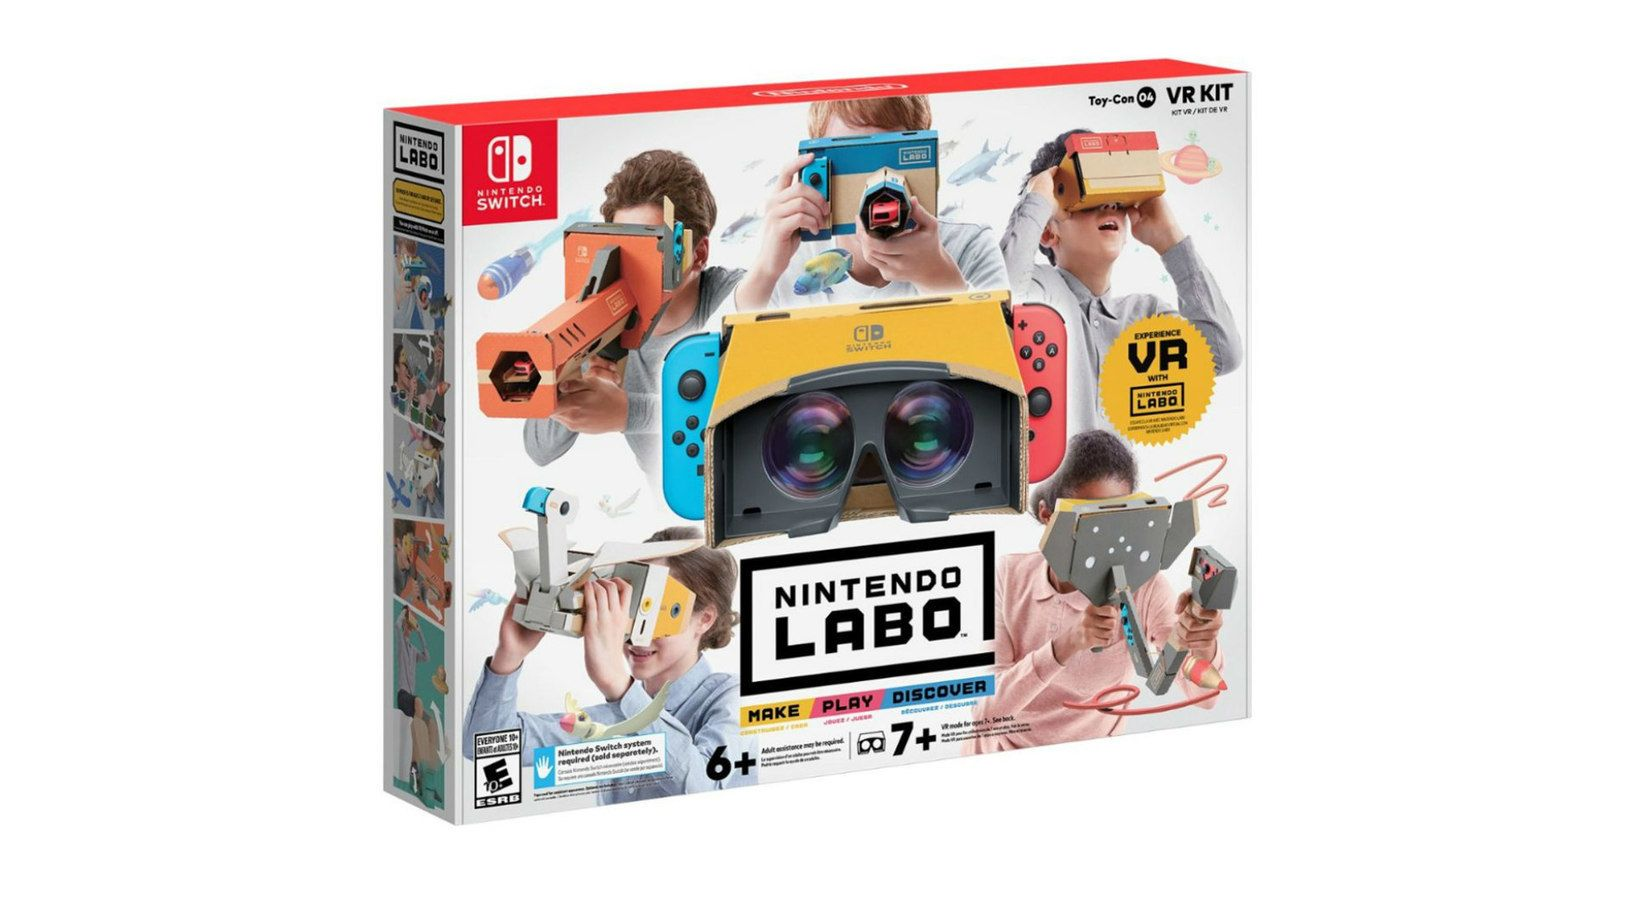 Nintendo's Labo VR Kit Sells Out at Major Online Retailers